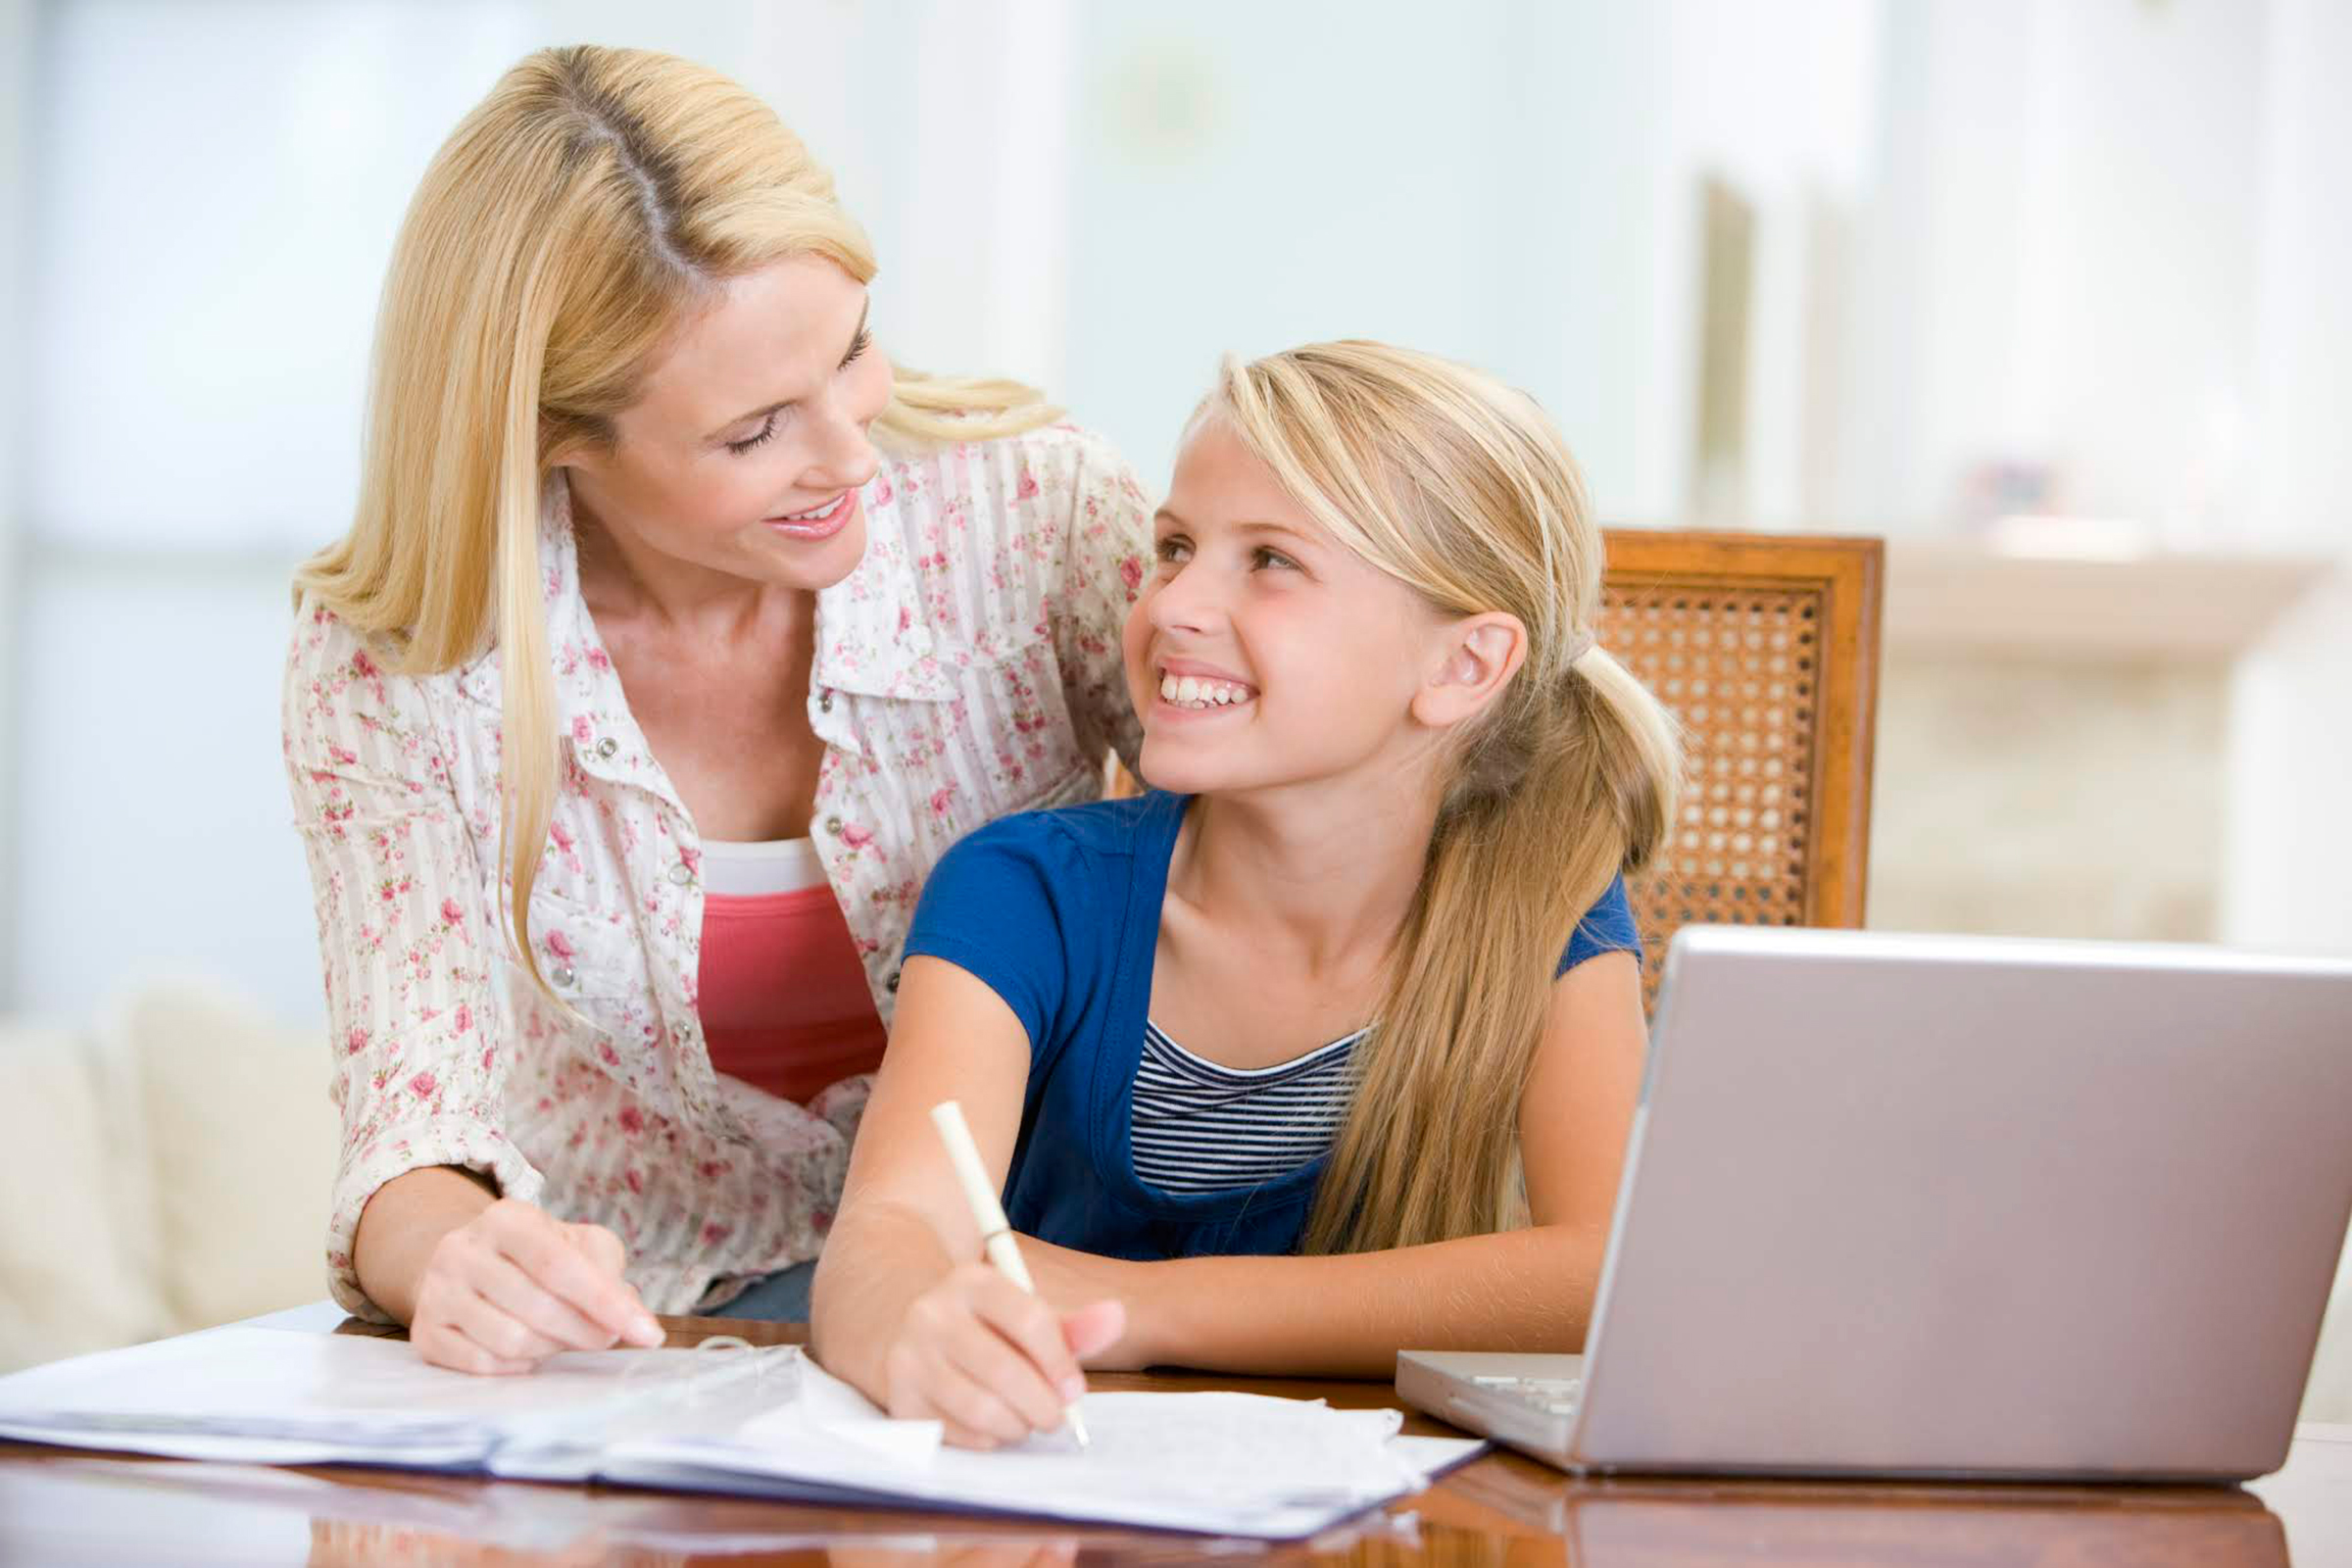 Facts about Schooling at Home